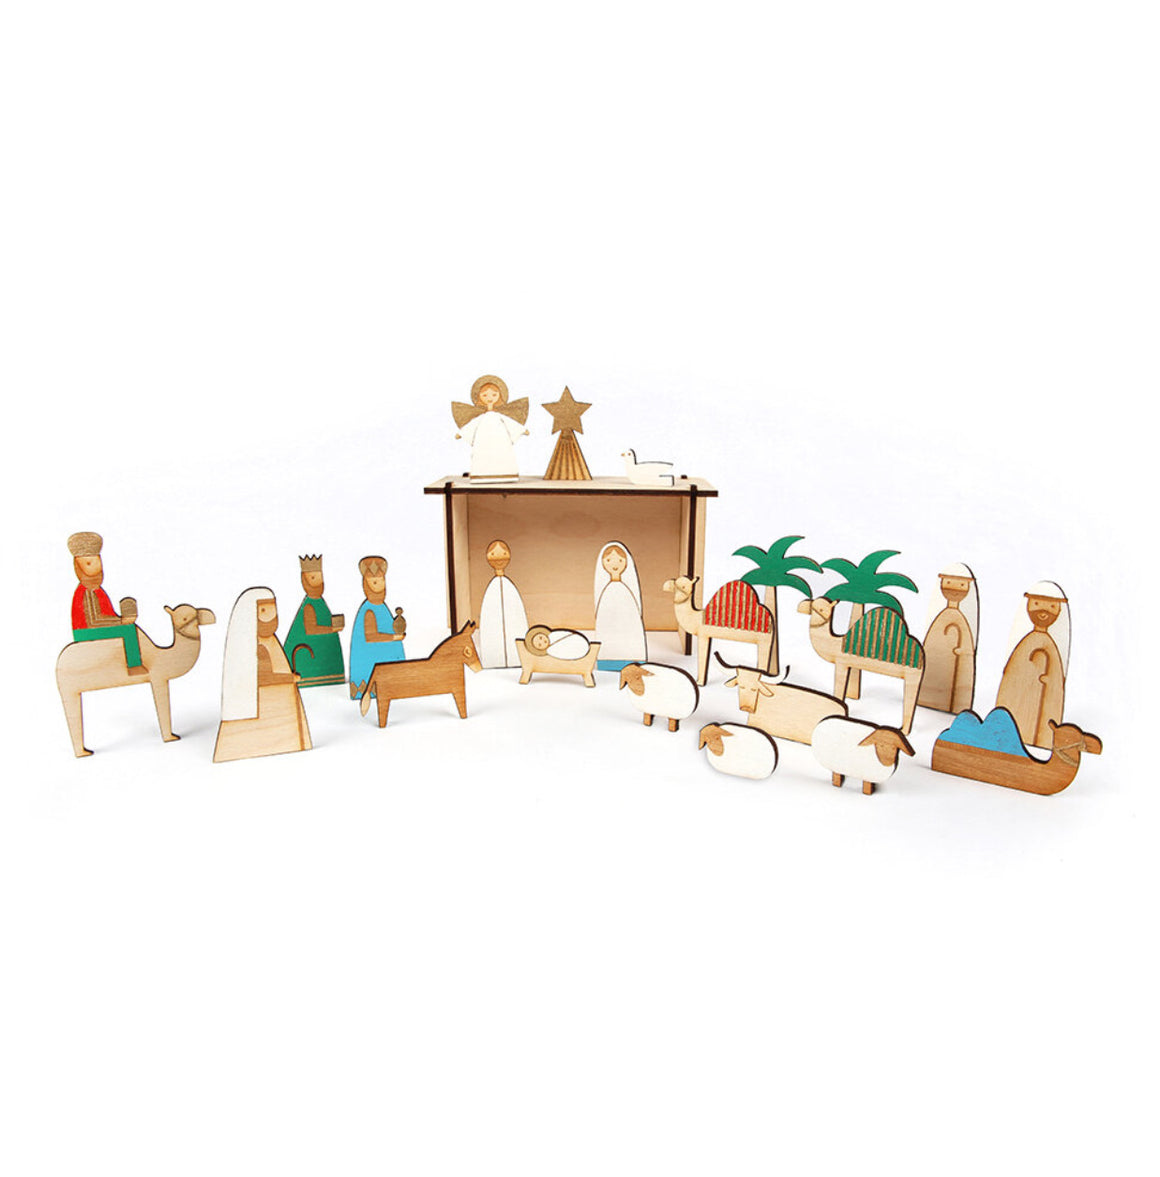 ADVENT CALENDAR - WOODEN NATIVITY SCENE